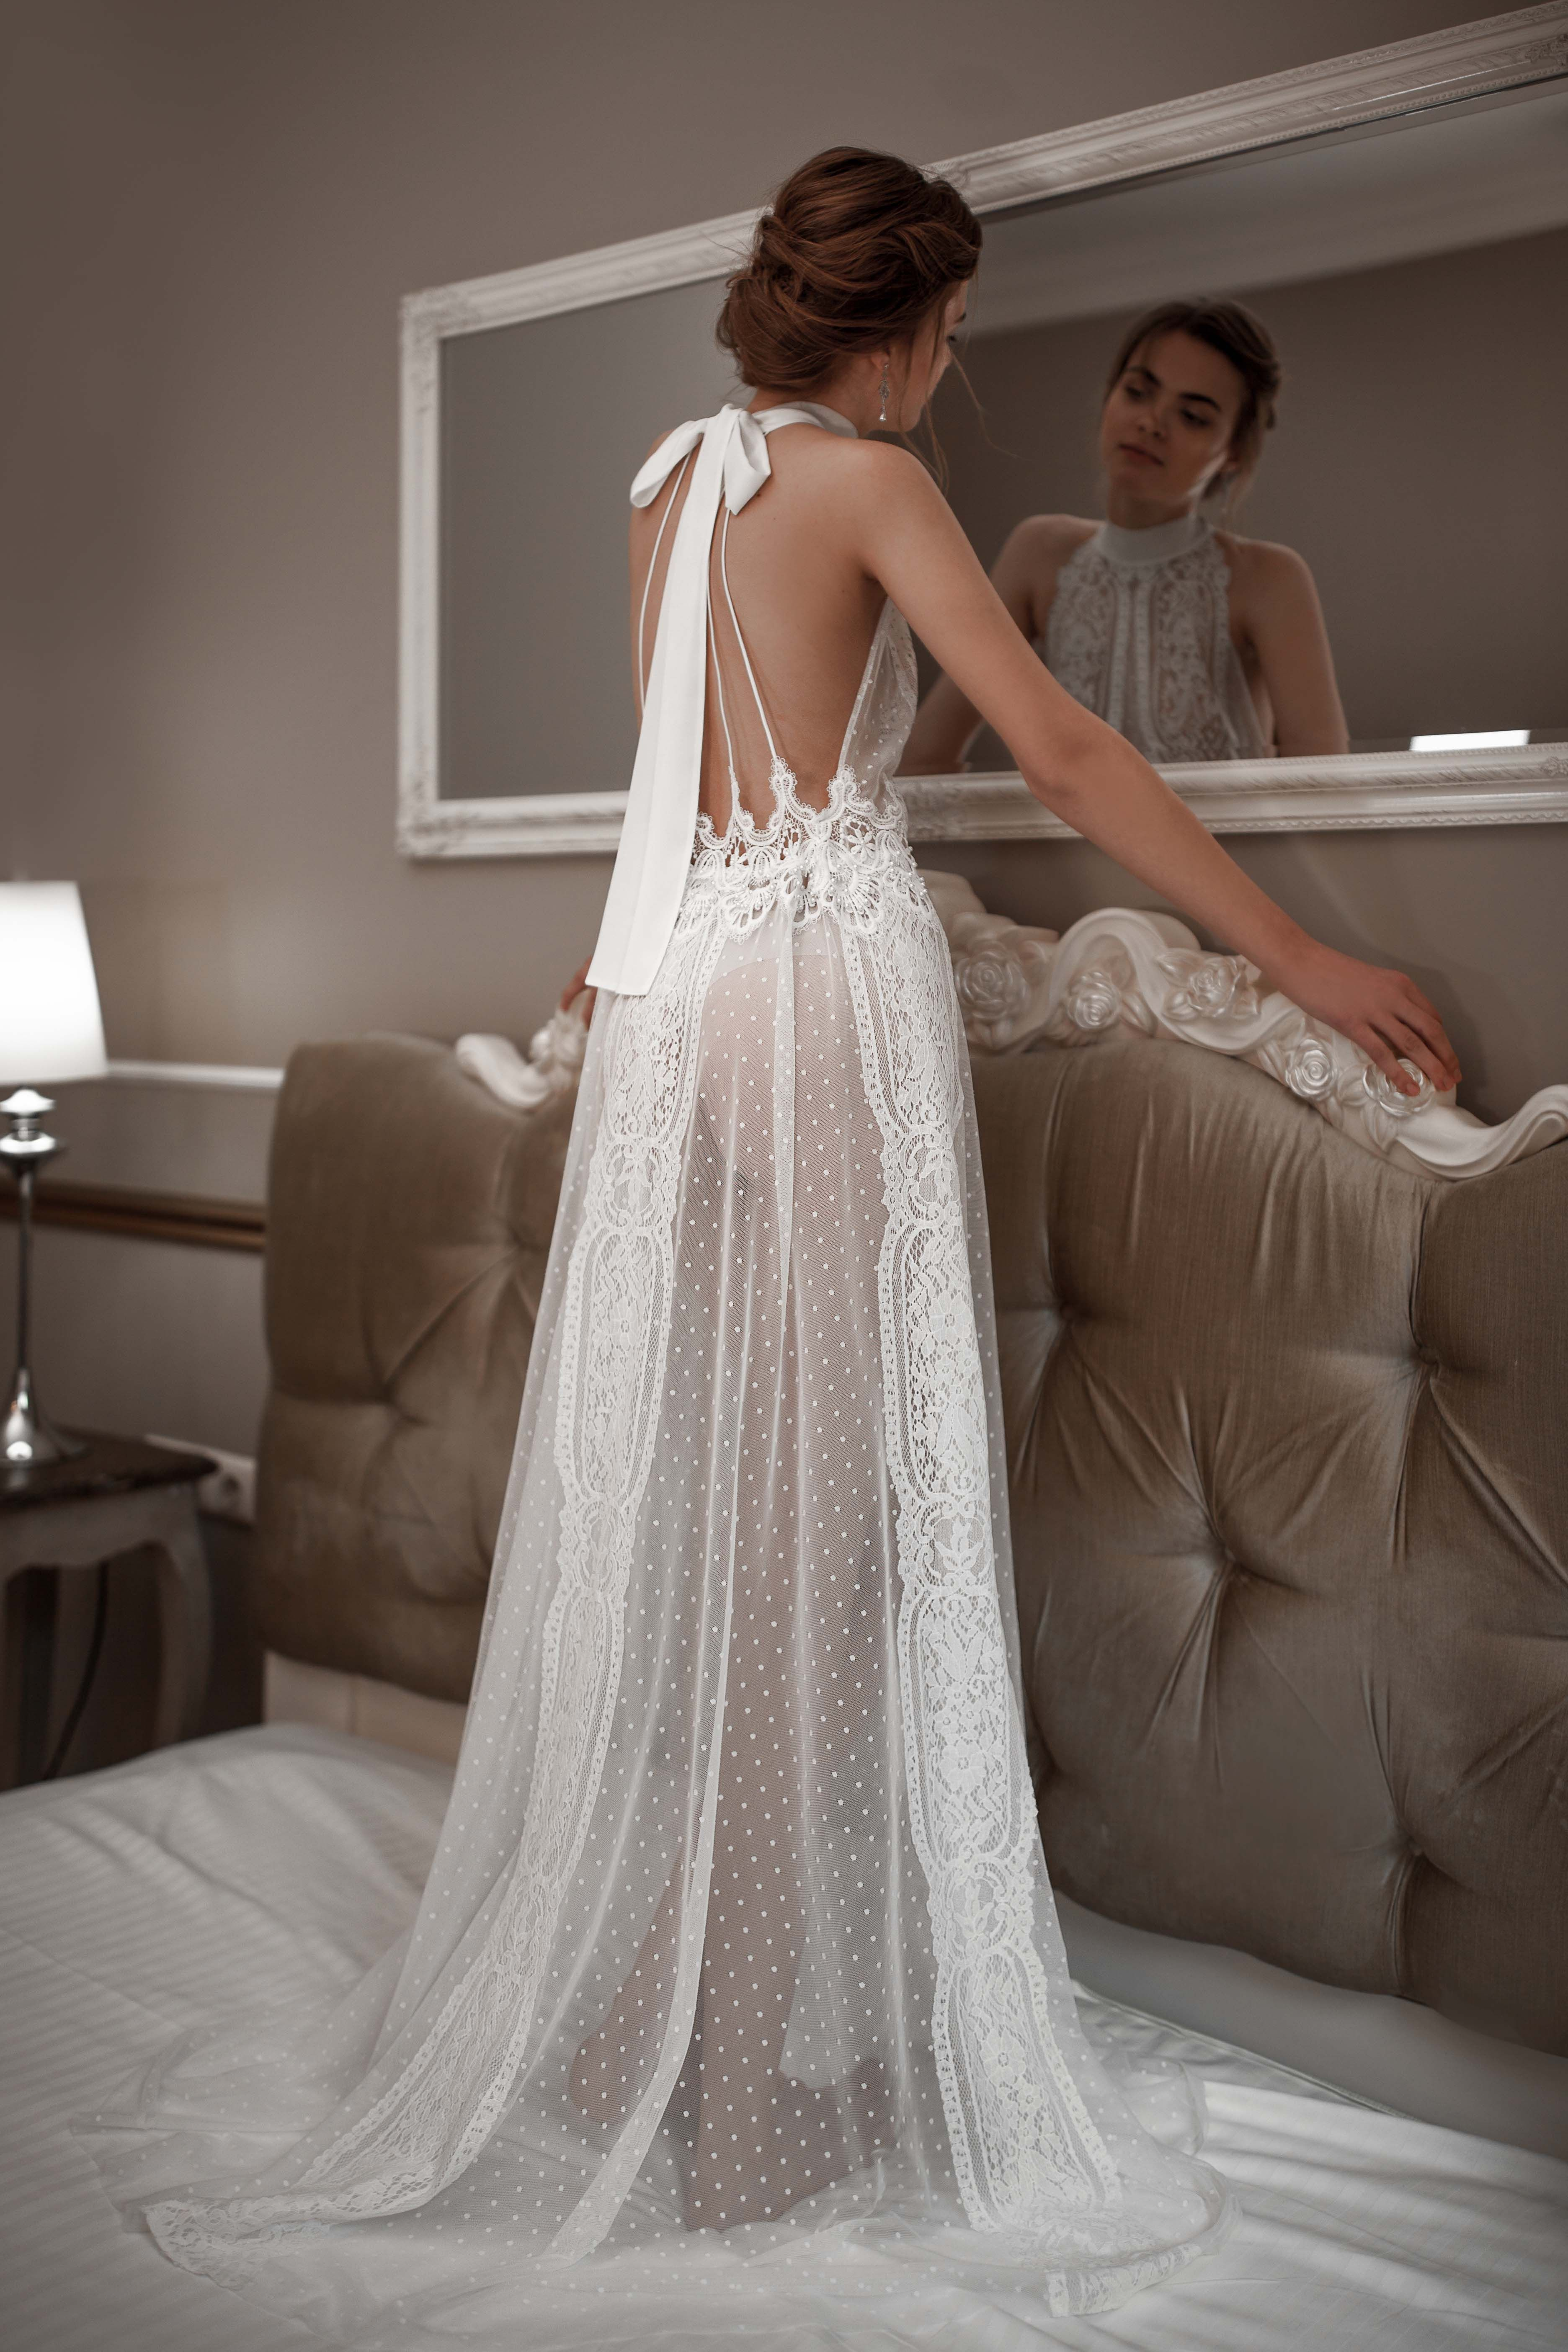 8d6ec462dce LONG TULLE BRIDAL NIGHTGOWN WITH LACE F-41 Weightless polka dot mesh  combined with Chantilly